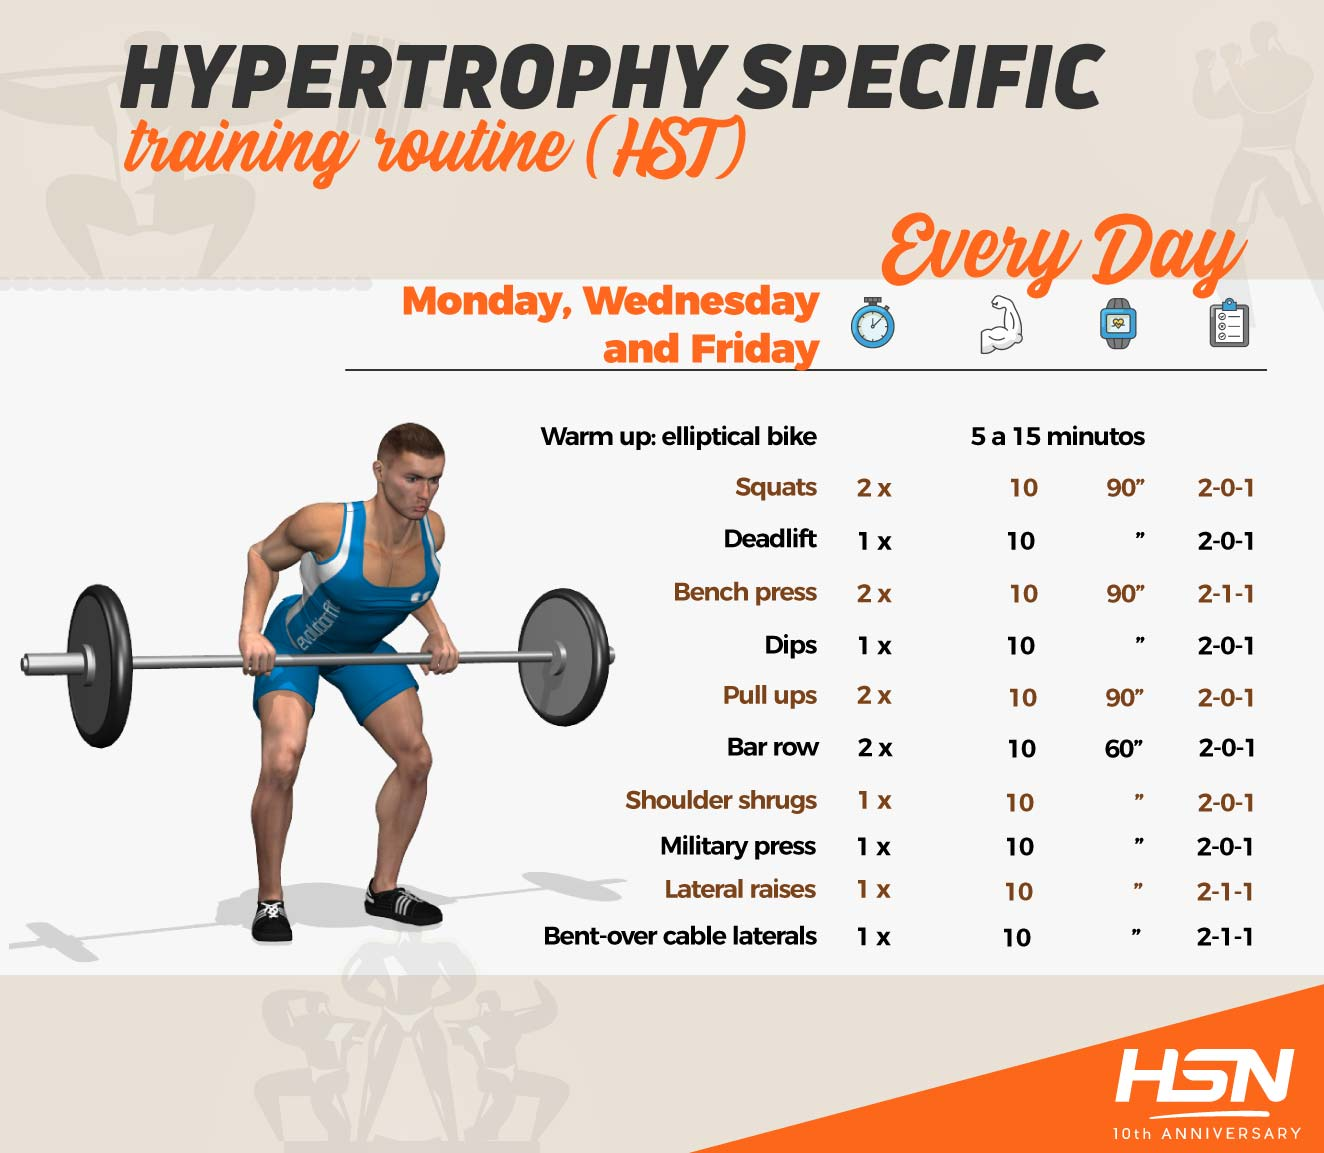 Hypertrophy Specific Training (HST) - full body routines